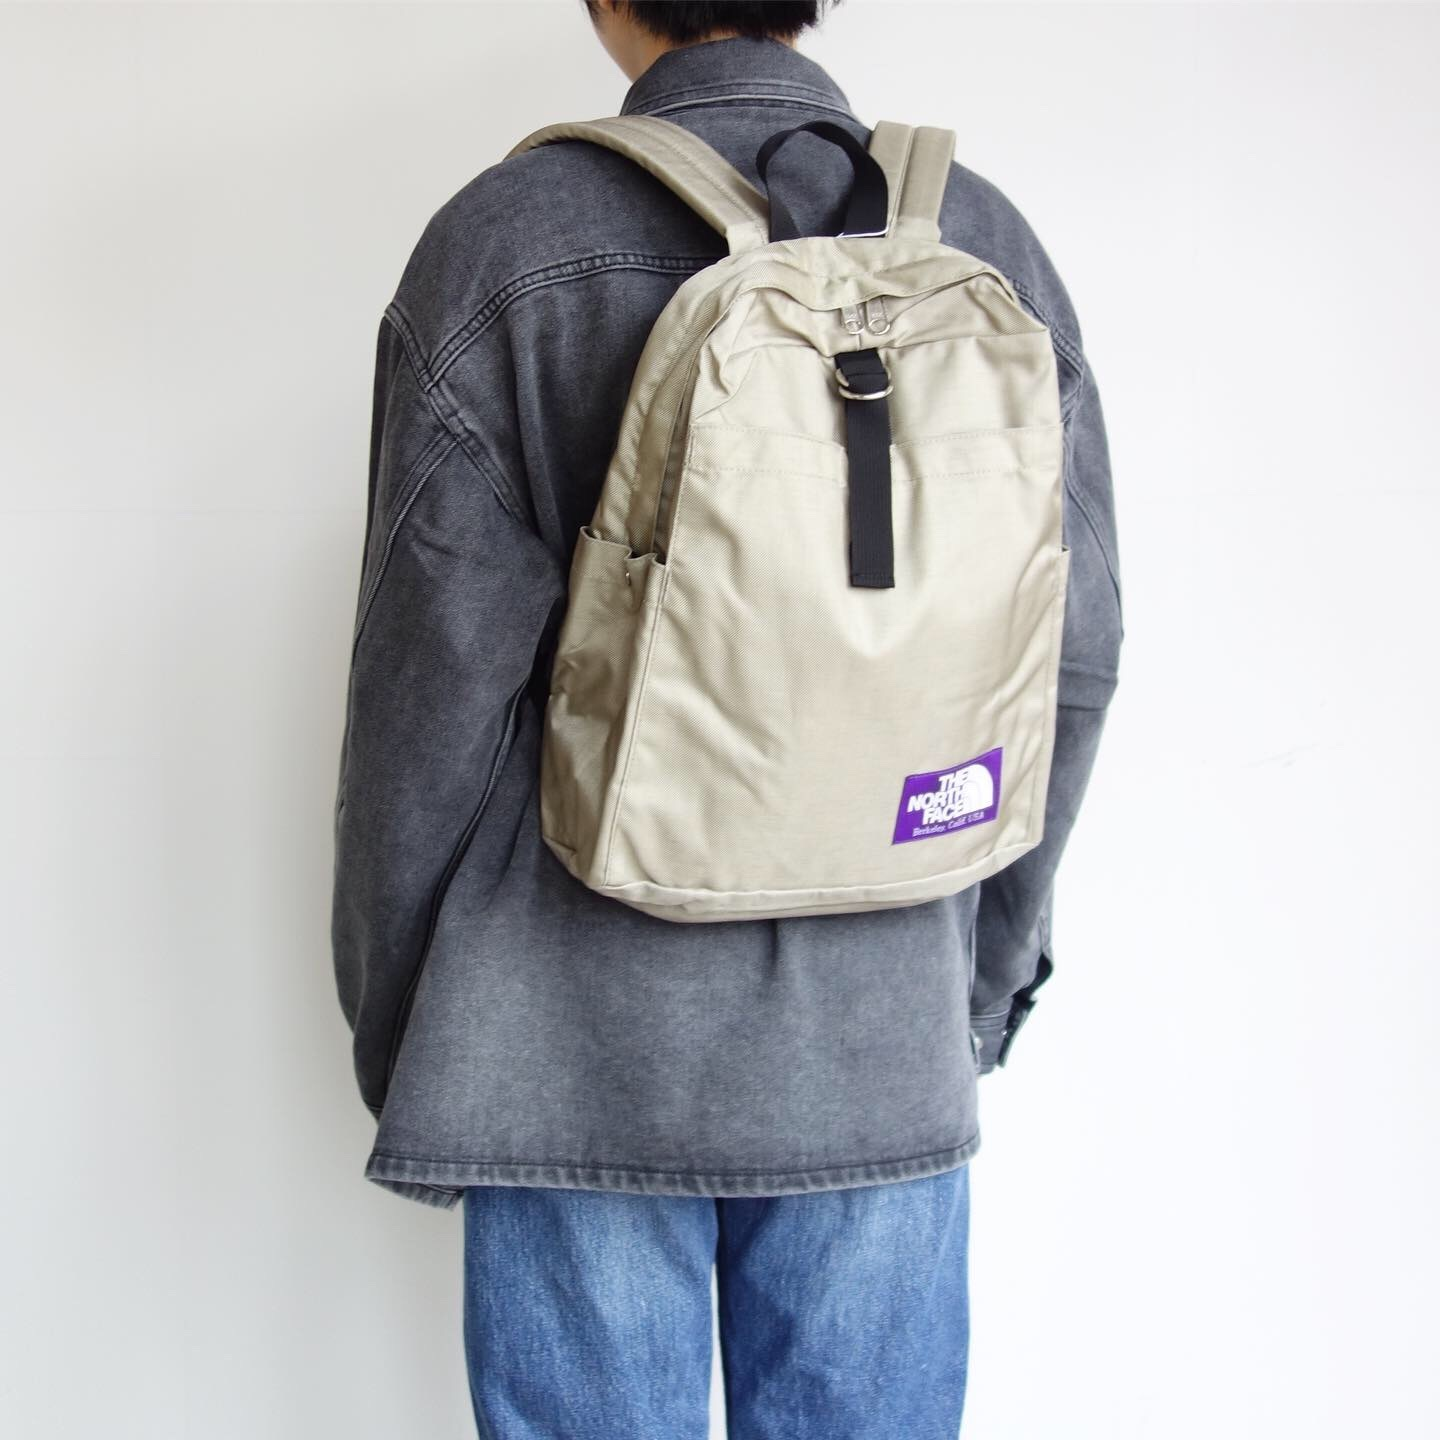 THE NORTH FACE PURPLE LABEL : Book Rac Pack M_a0234452_16104902.jpg